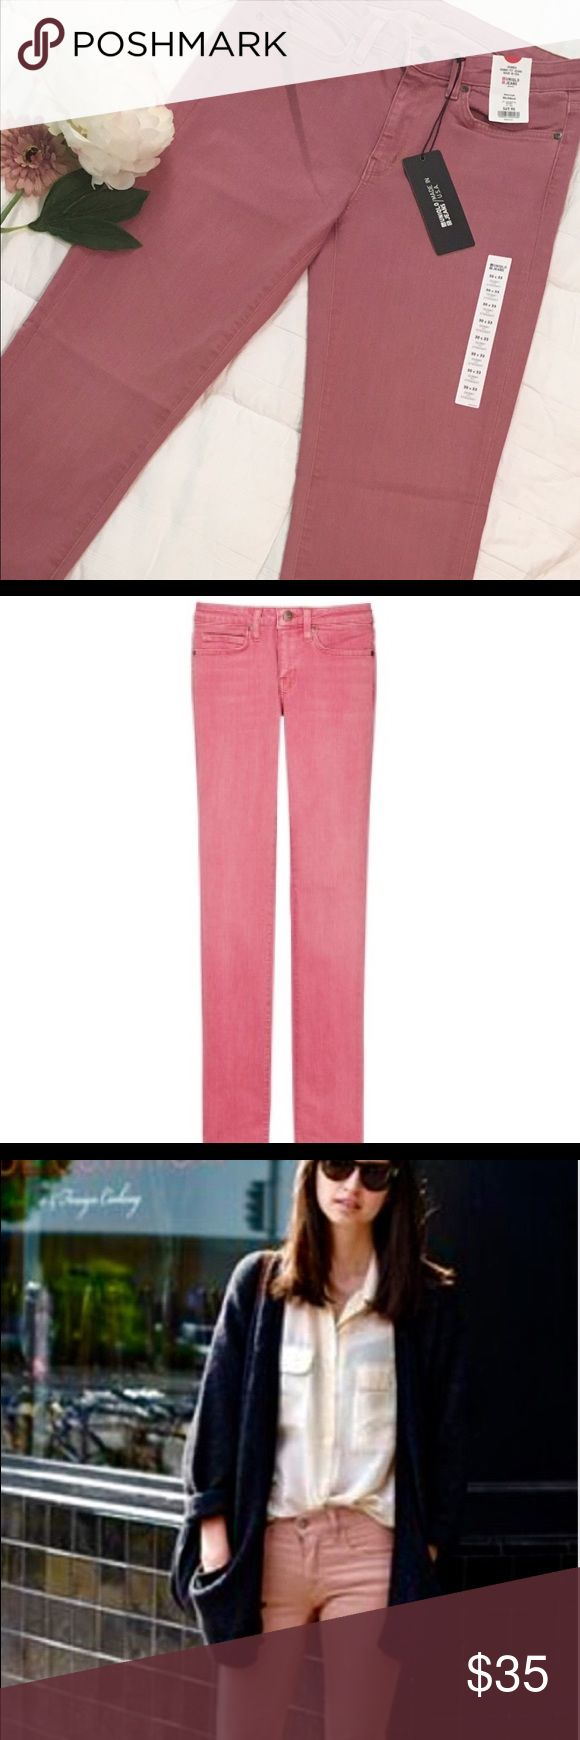 """Charity ItemUSA madeSkinny Fit Blush Jeans ✨✨NWT! Stretchy Skinny Fit Jeans in a Blush Shade of Pink. ✨✨ All Proceeds from the Sale of this item will Benefit """"Move Beyond the Grid"""", a non-profit to provide Sustainable Living Solutions for Mississippi's Public.  30 waist x 33 length. Uniqlo Jeans Skinny"""